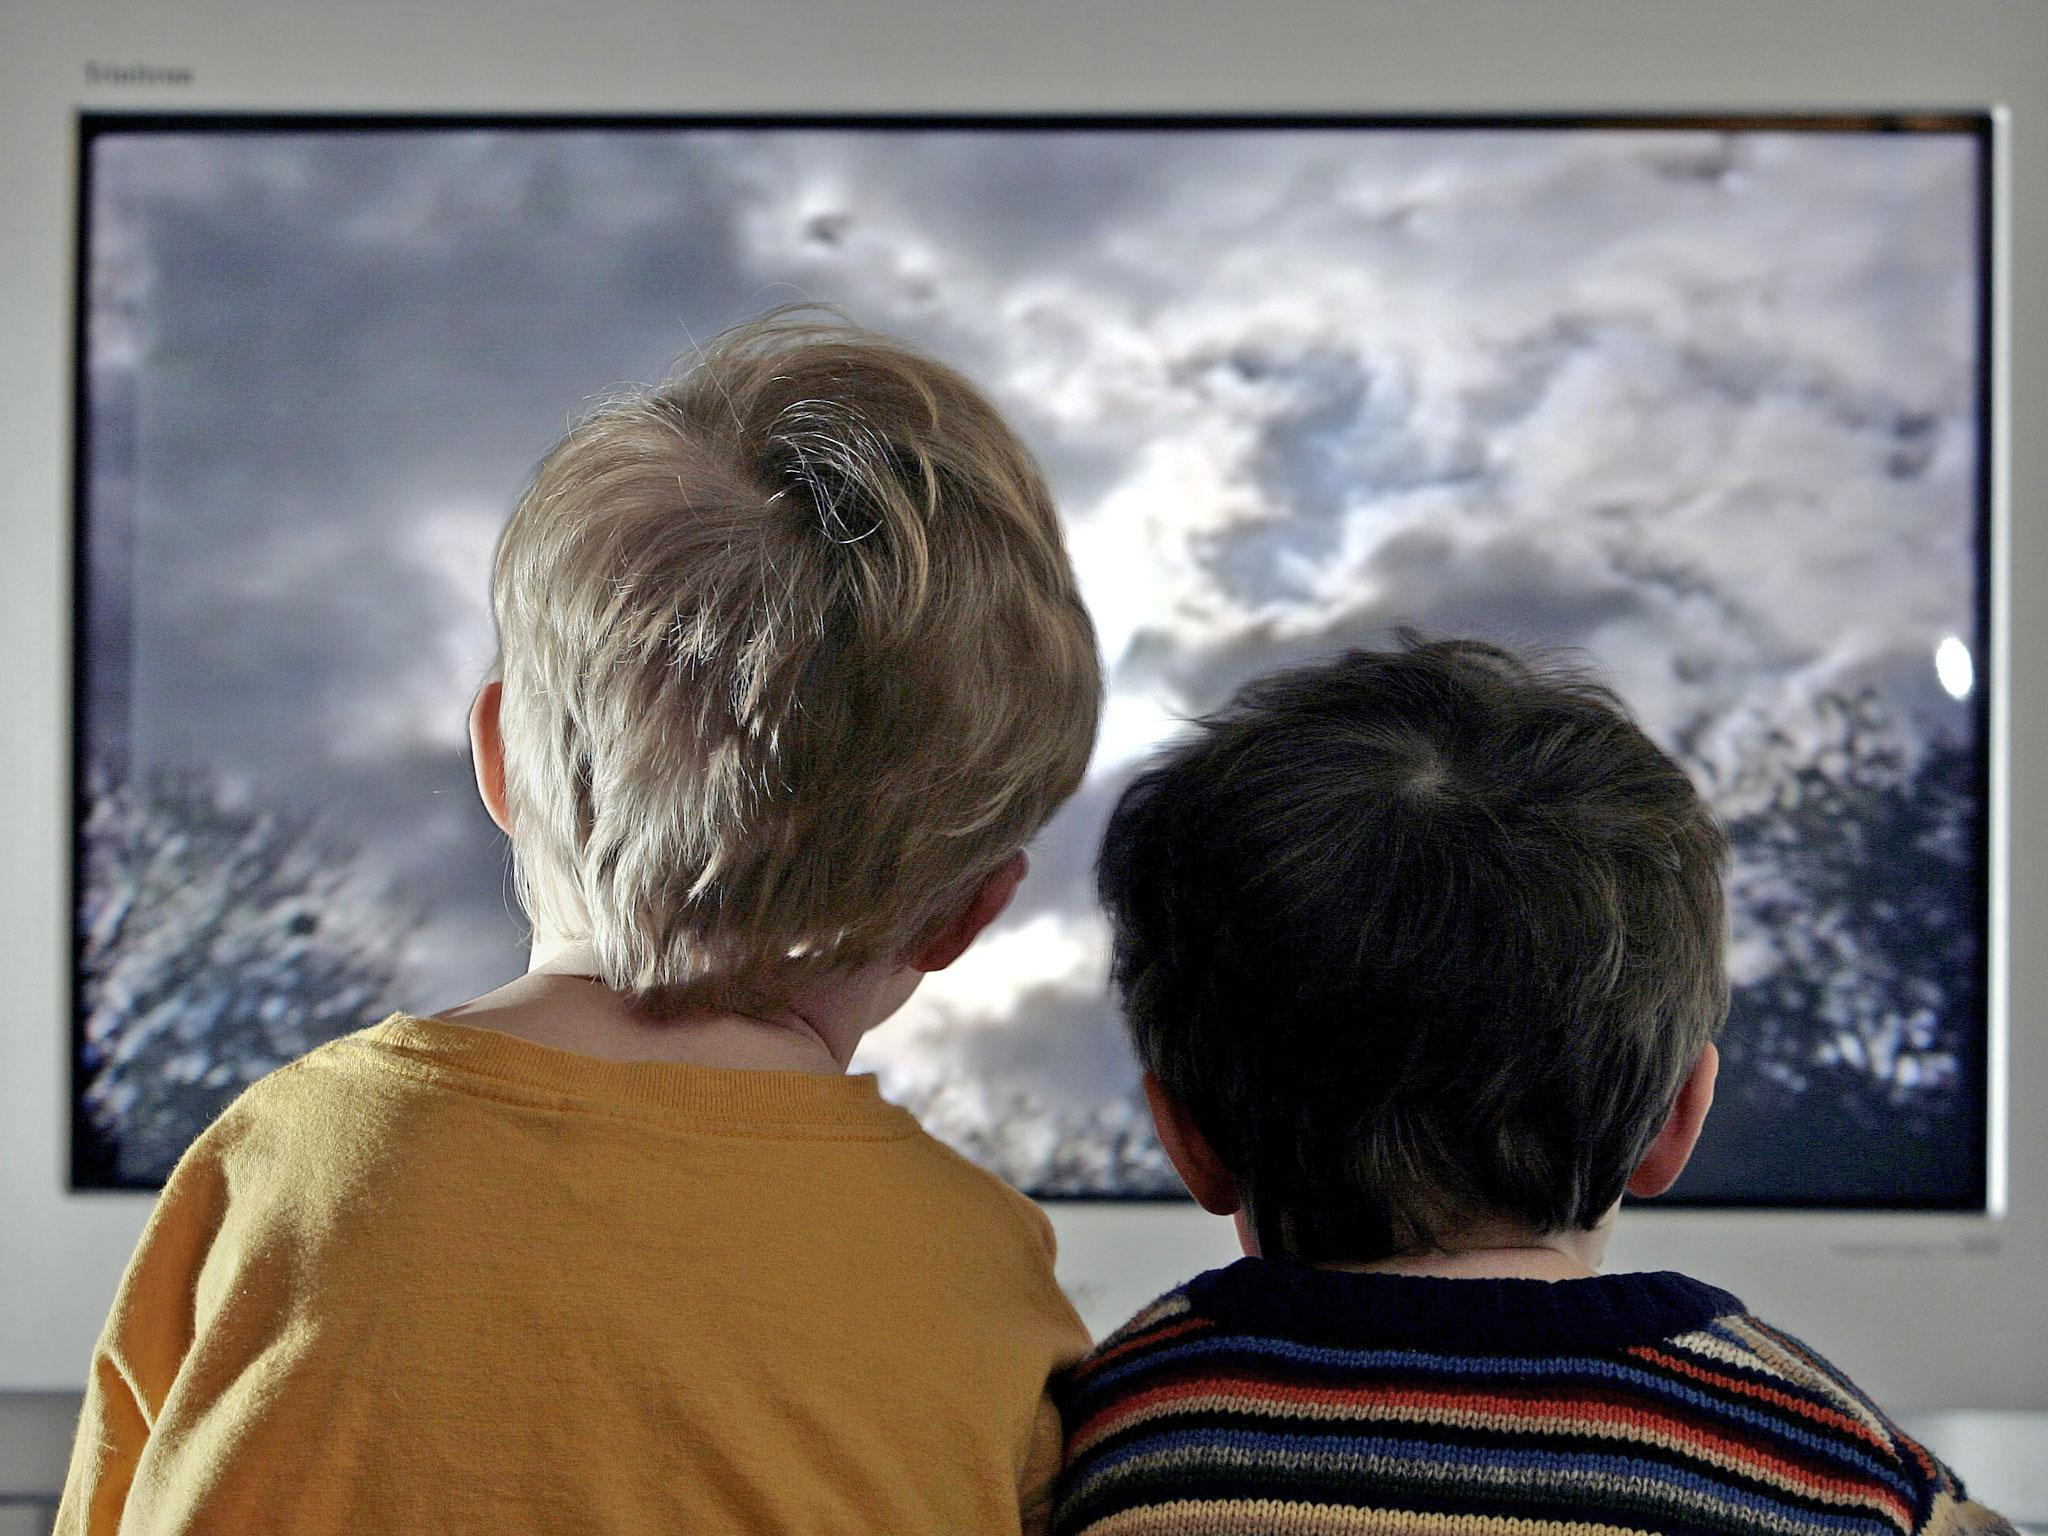 an analysis of the effects of television in children The effects of television violence on antisocial behavior - a metaanalysis  commun res  the effects of violent video games on aggression - a meta- analysis.